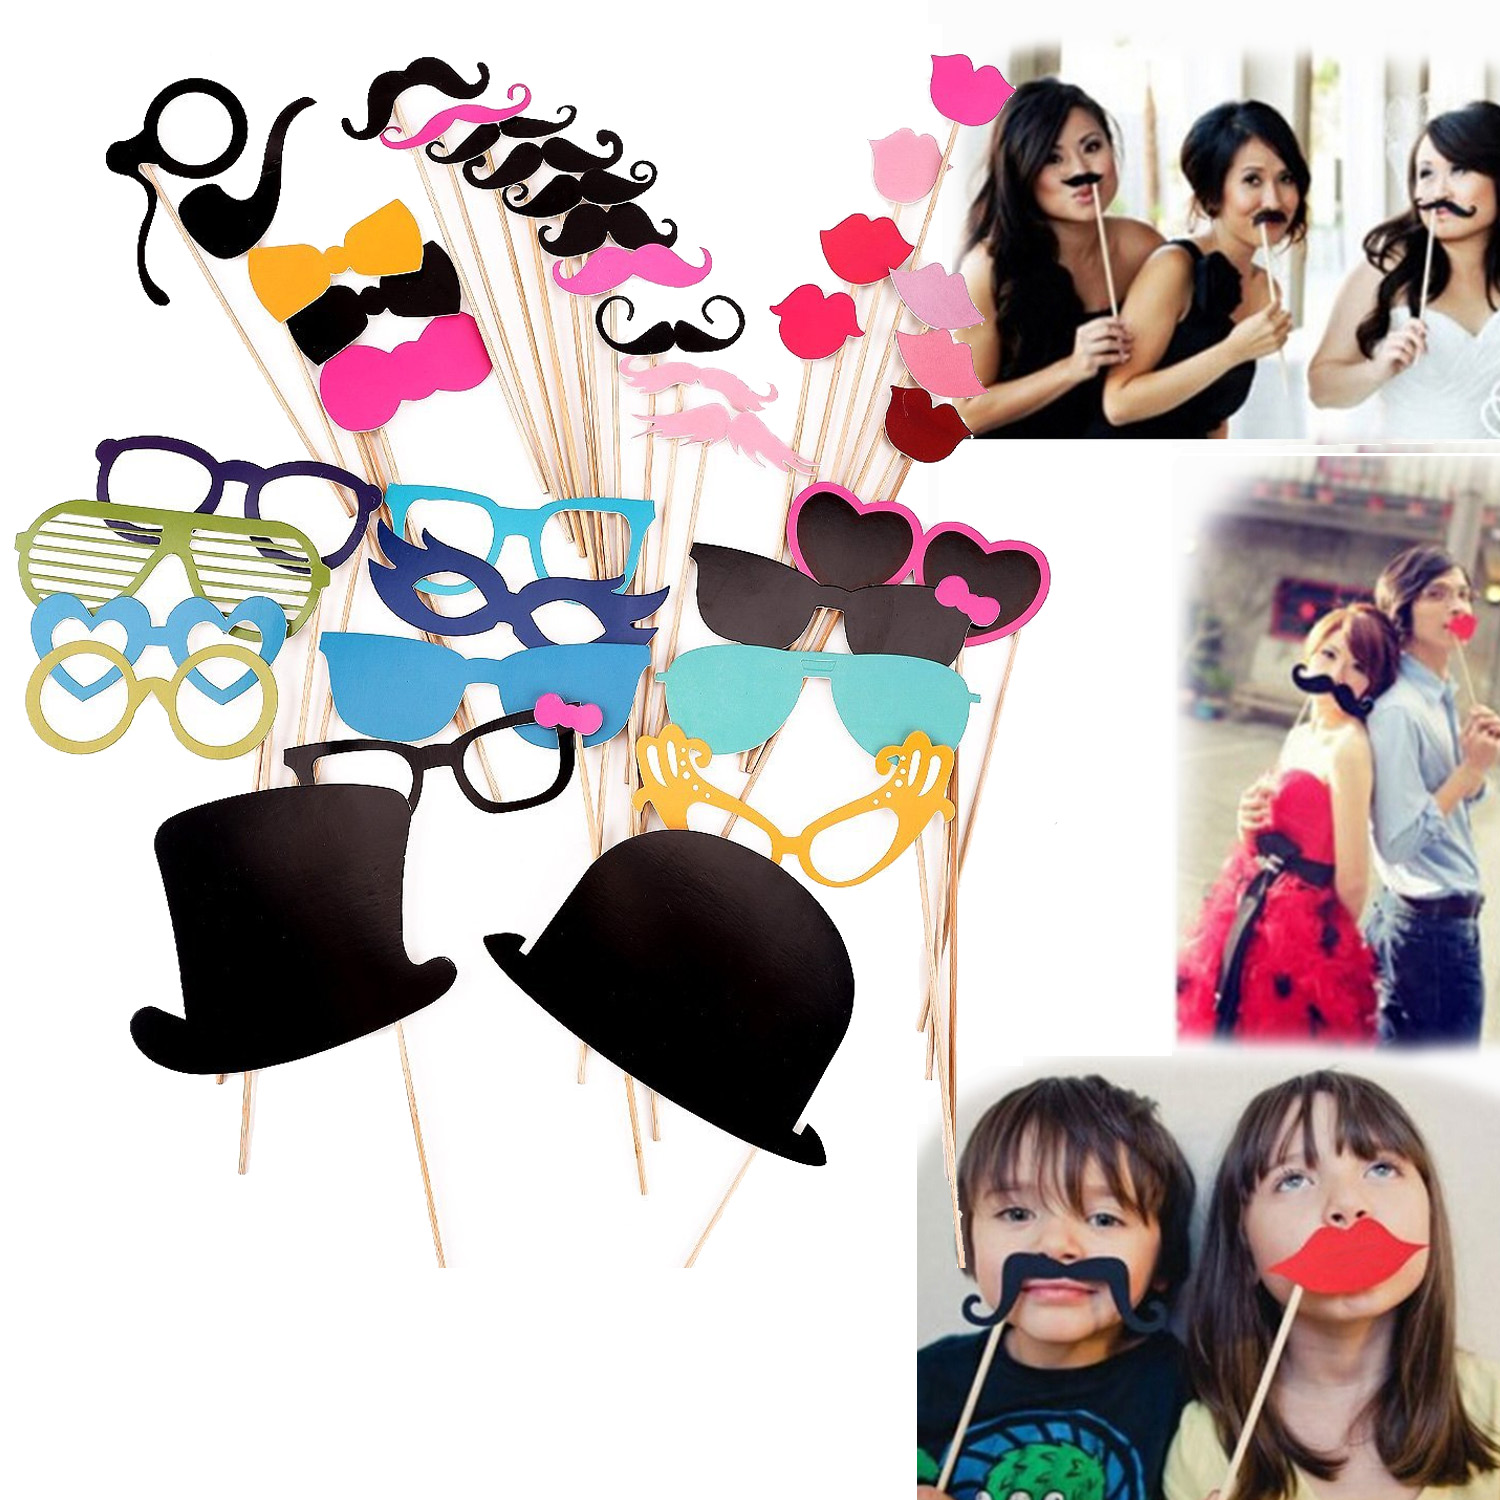 Satkago 36Pcs DIY Photo Booth Photography Props Accessories Mustache Glasses Lips Caps On A Stick for Happy Fun Wedding Party